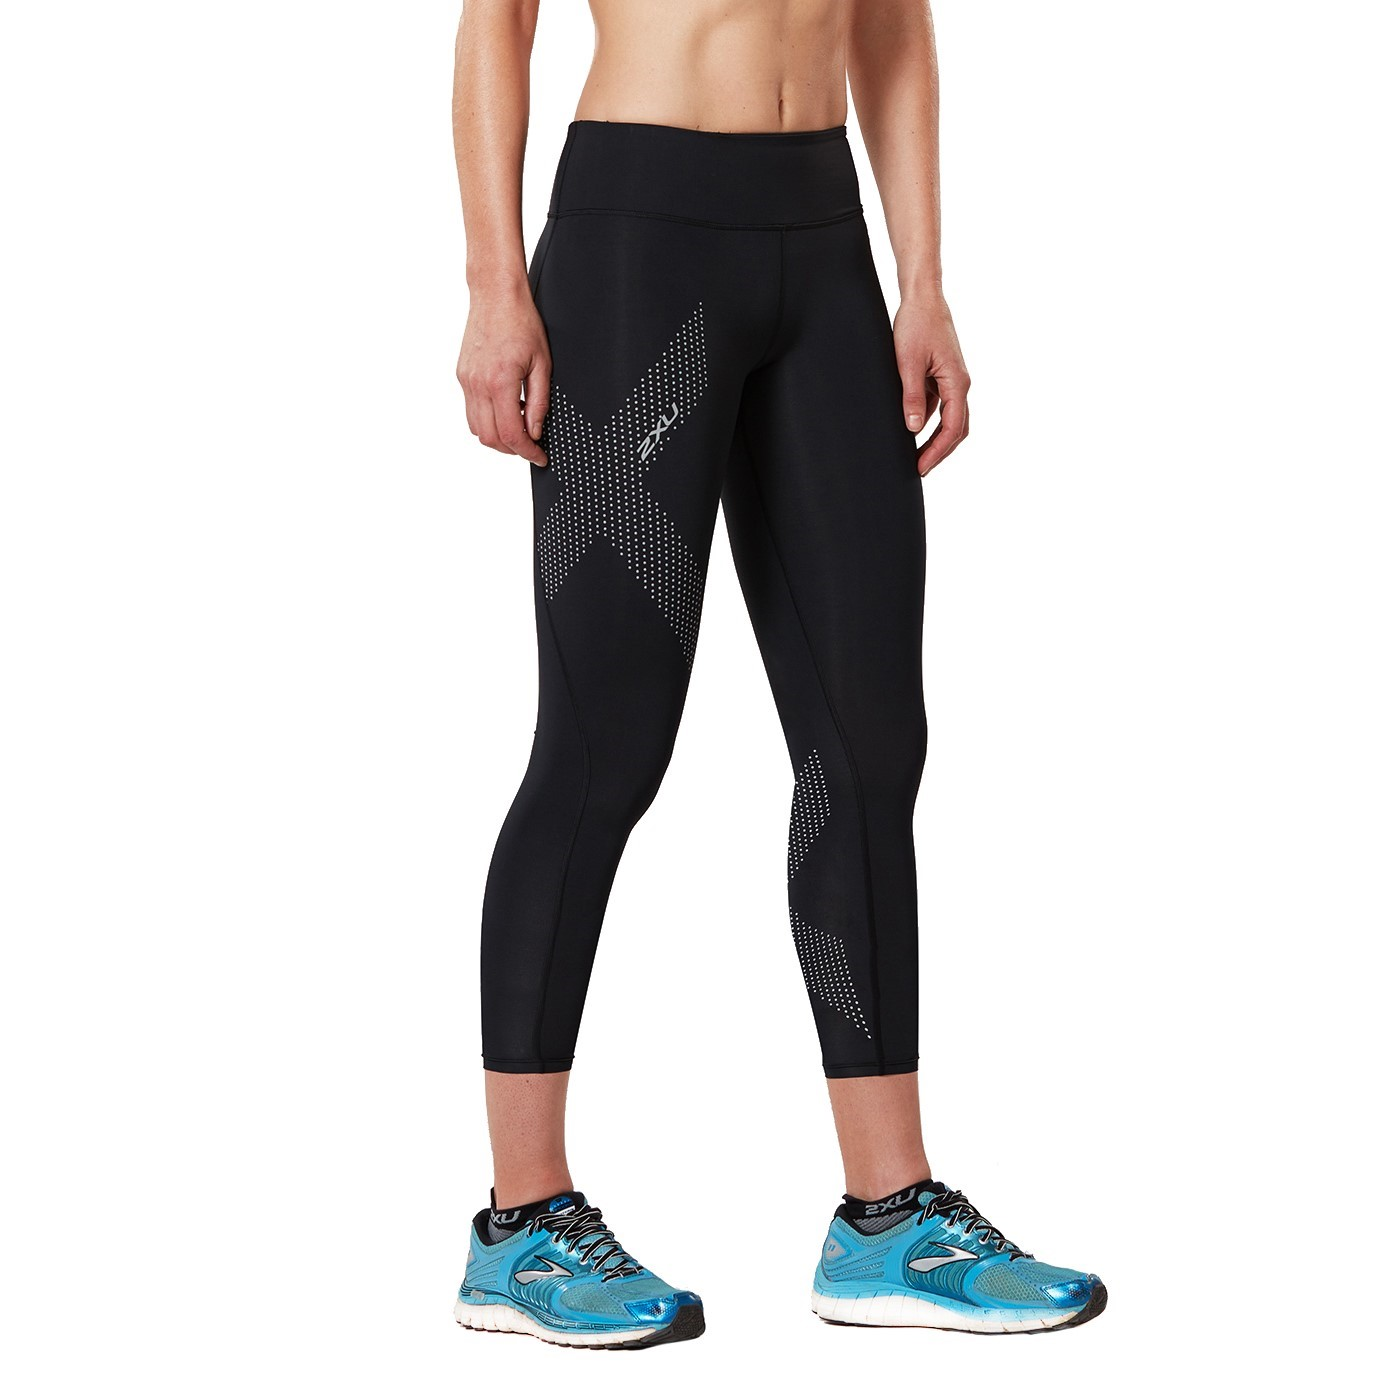 0bc9f79bc45100 2XU Womens Mid-Rise 7 8 Compression Tights - Black Dotted Reflective Logo